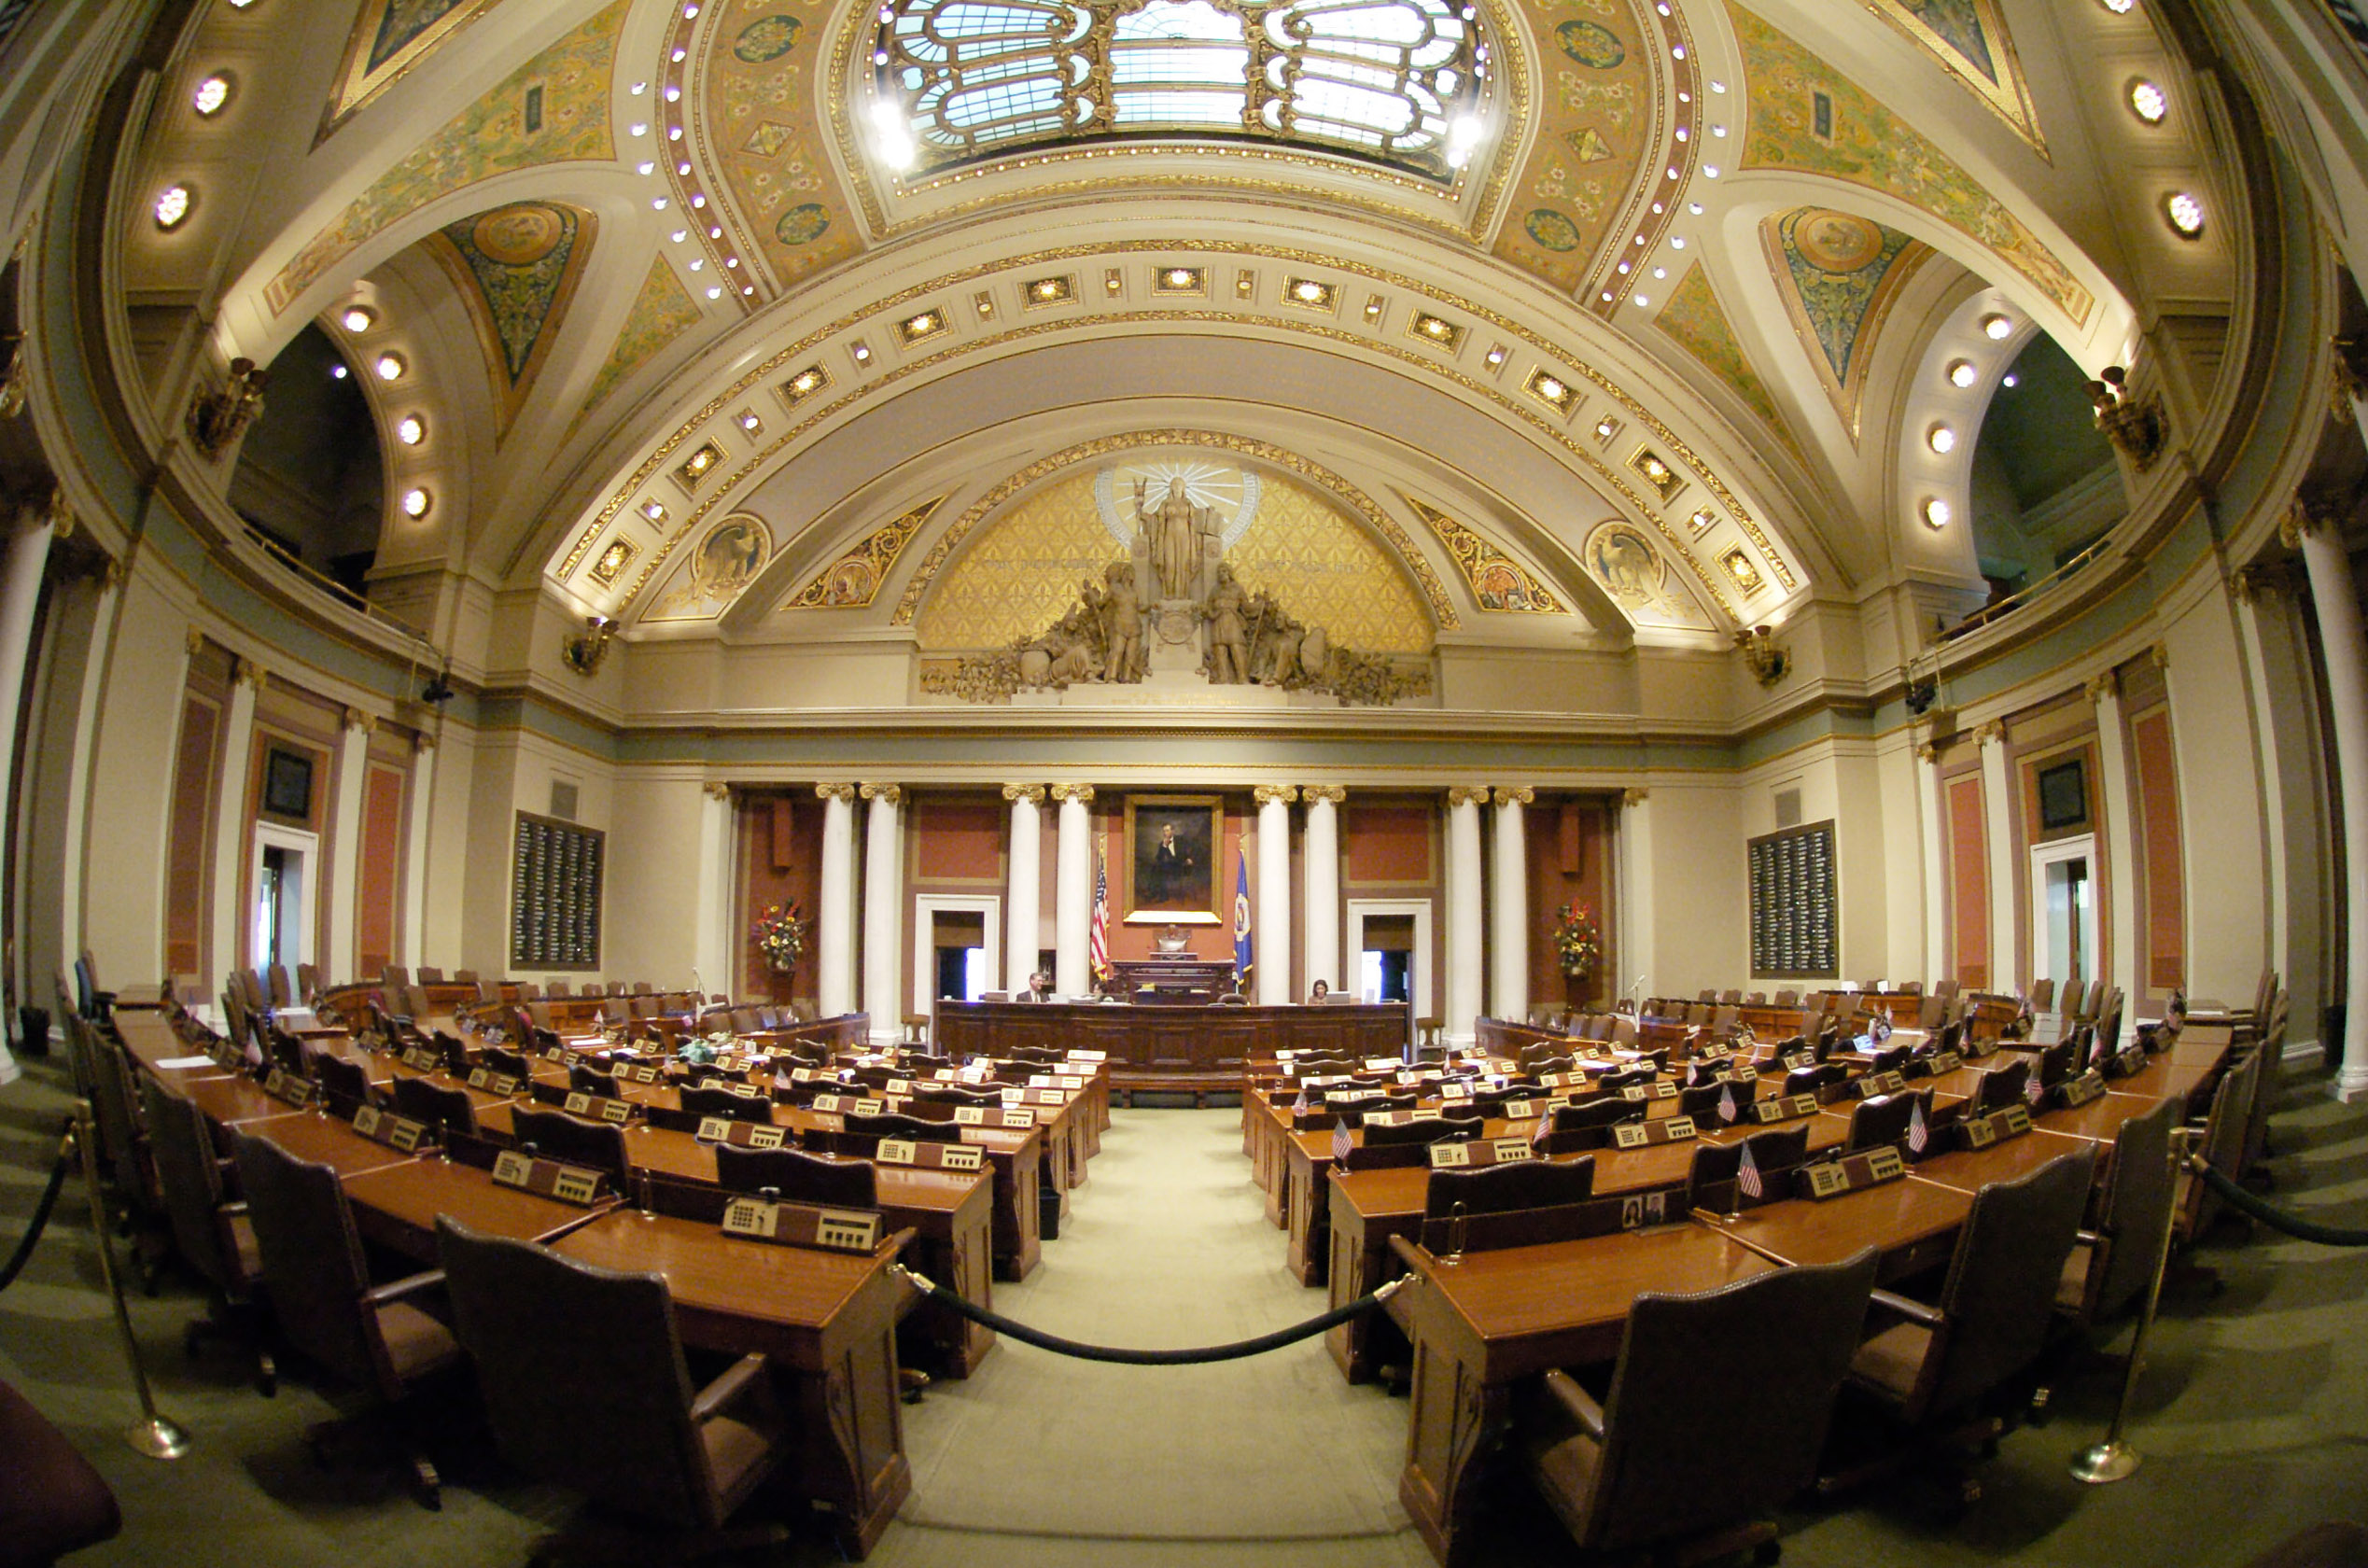 Conference Committee Votes To Restore Legislative Funding With No Strings Attached